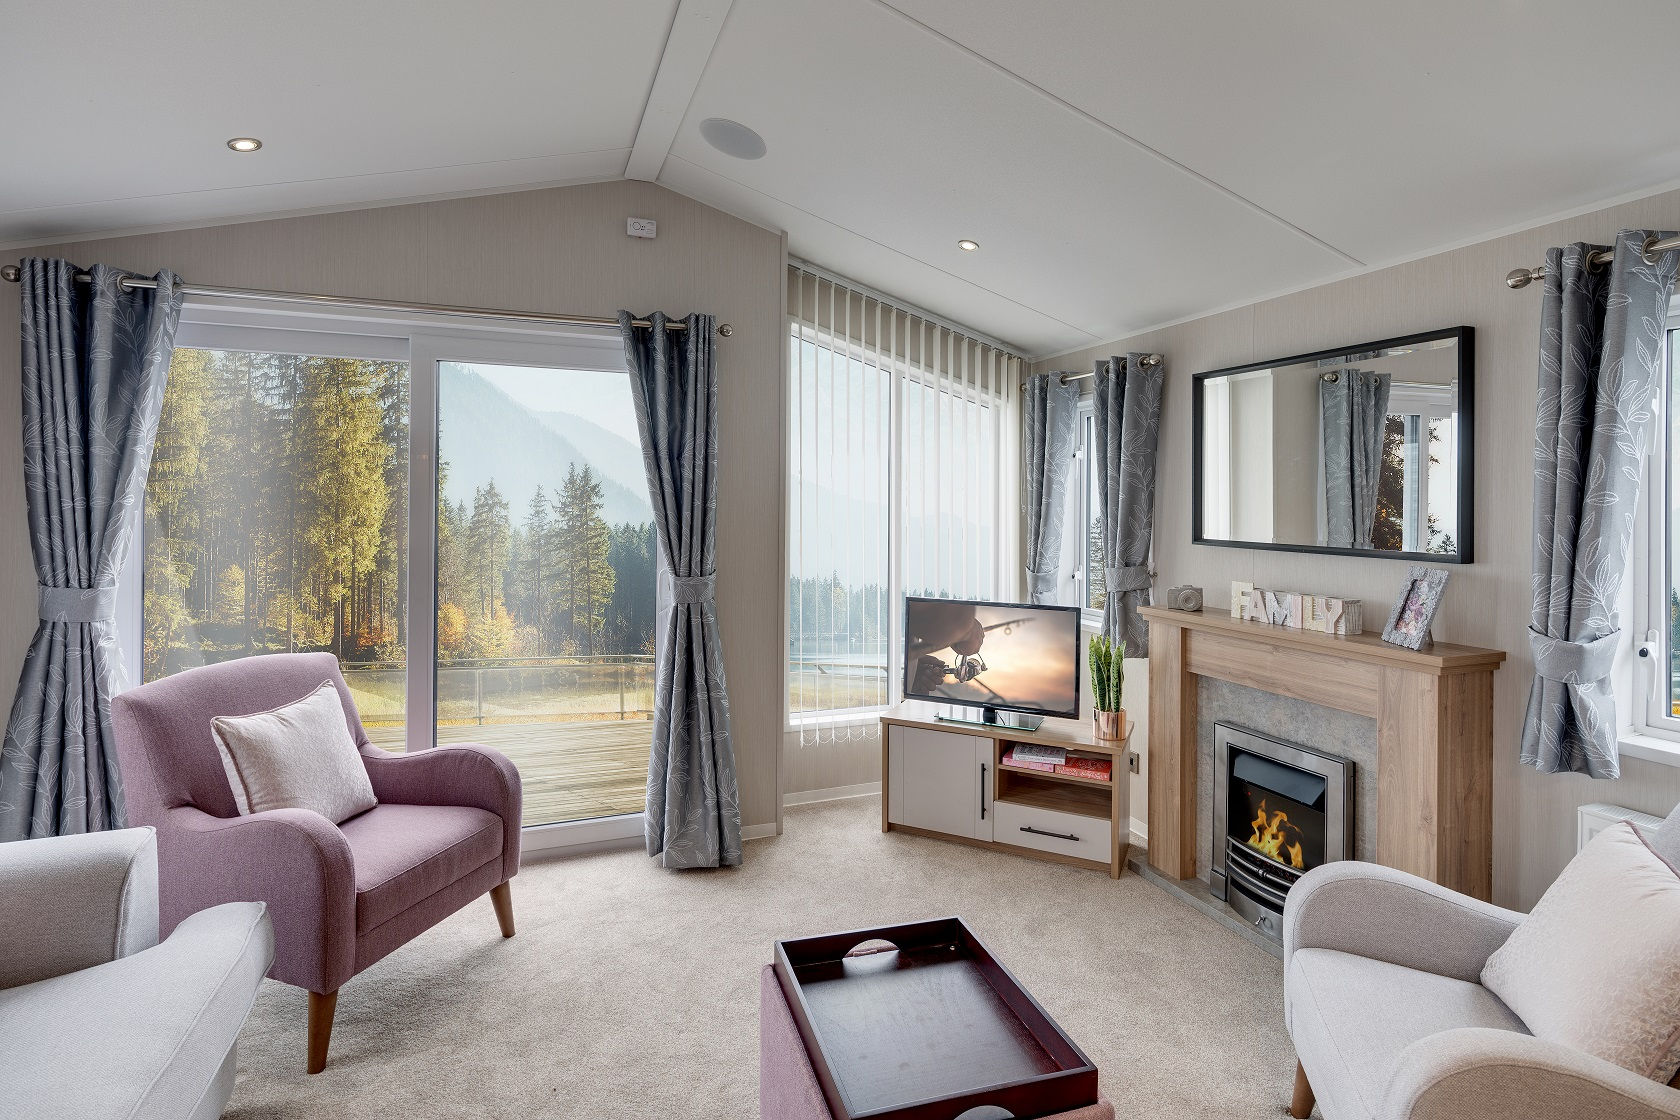 Willerby Waverley: New Static Caravans and Holiday Homes for Sale, On Order Large Image 1